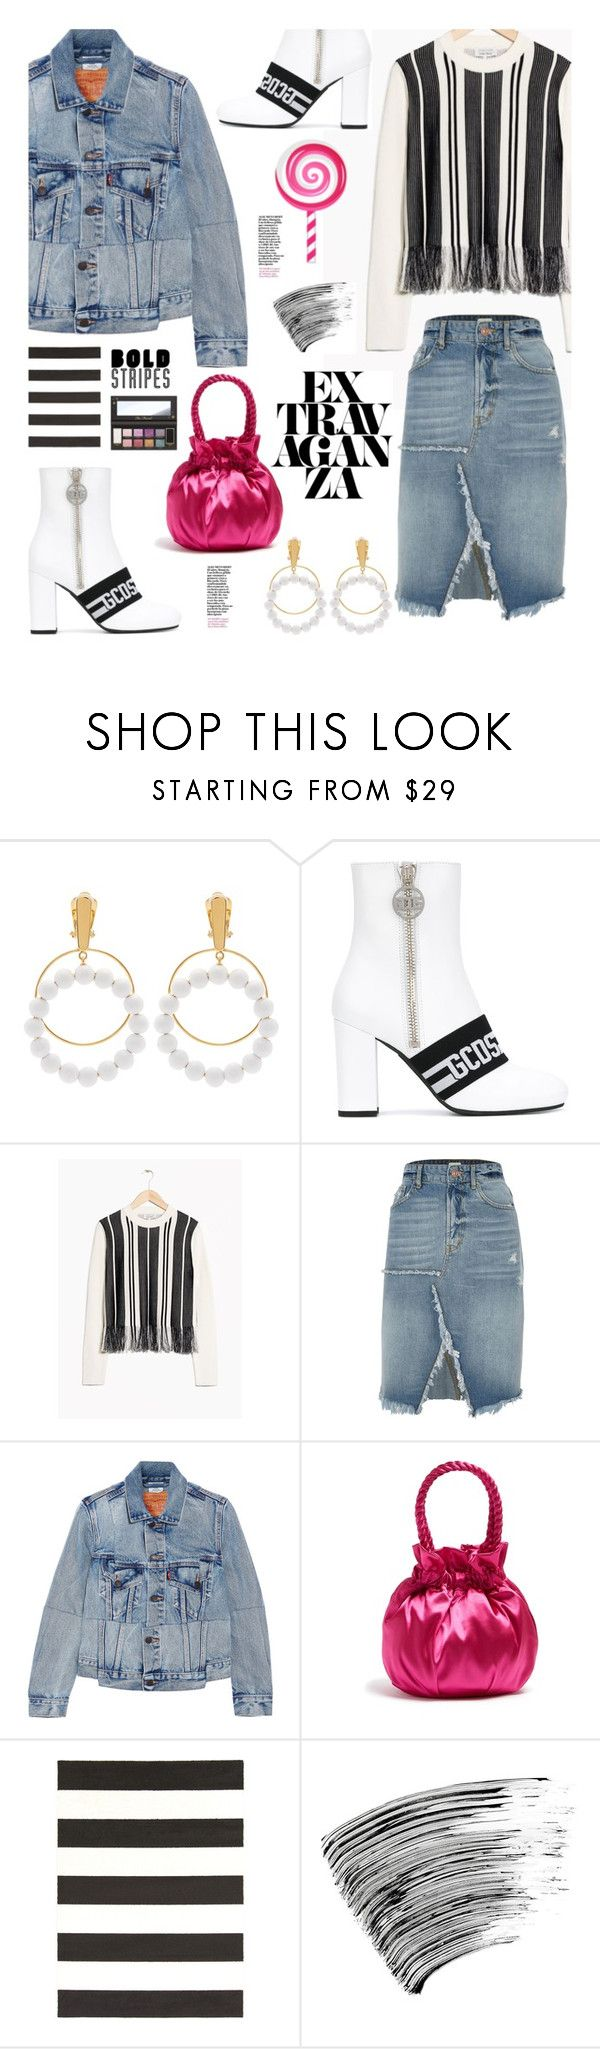 """""""Trends 2018: BOLD STRIPES"""" by hamaly ❤ liked on Polyvore featuring Marni, GCDS, River Island, Vetements, Staud, Surya, Bobbi Brown Cosmetics, outfit, stripes and ootd"""